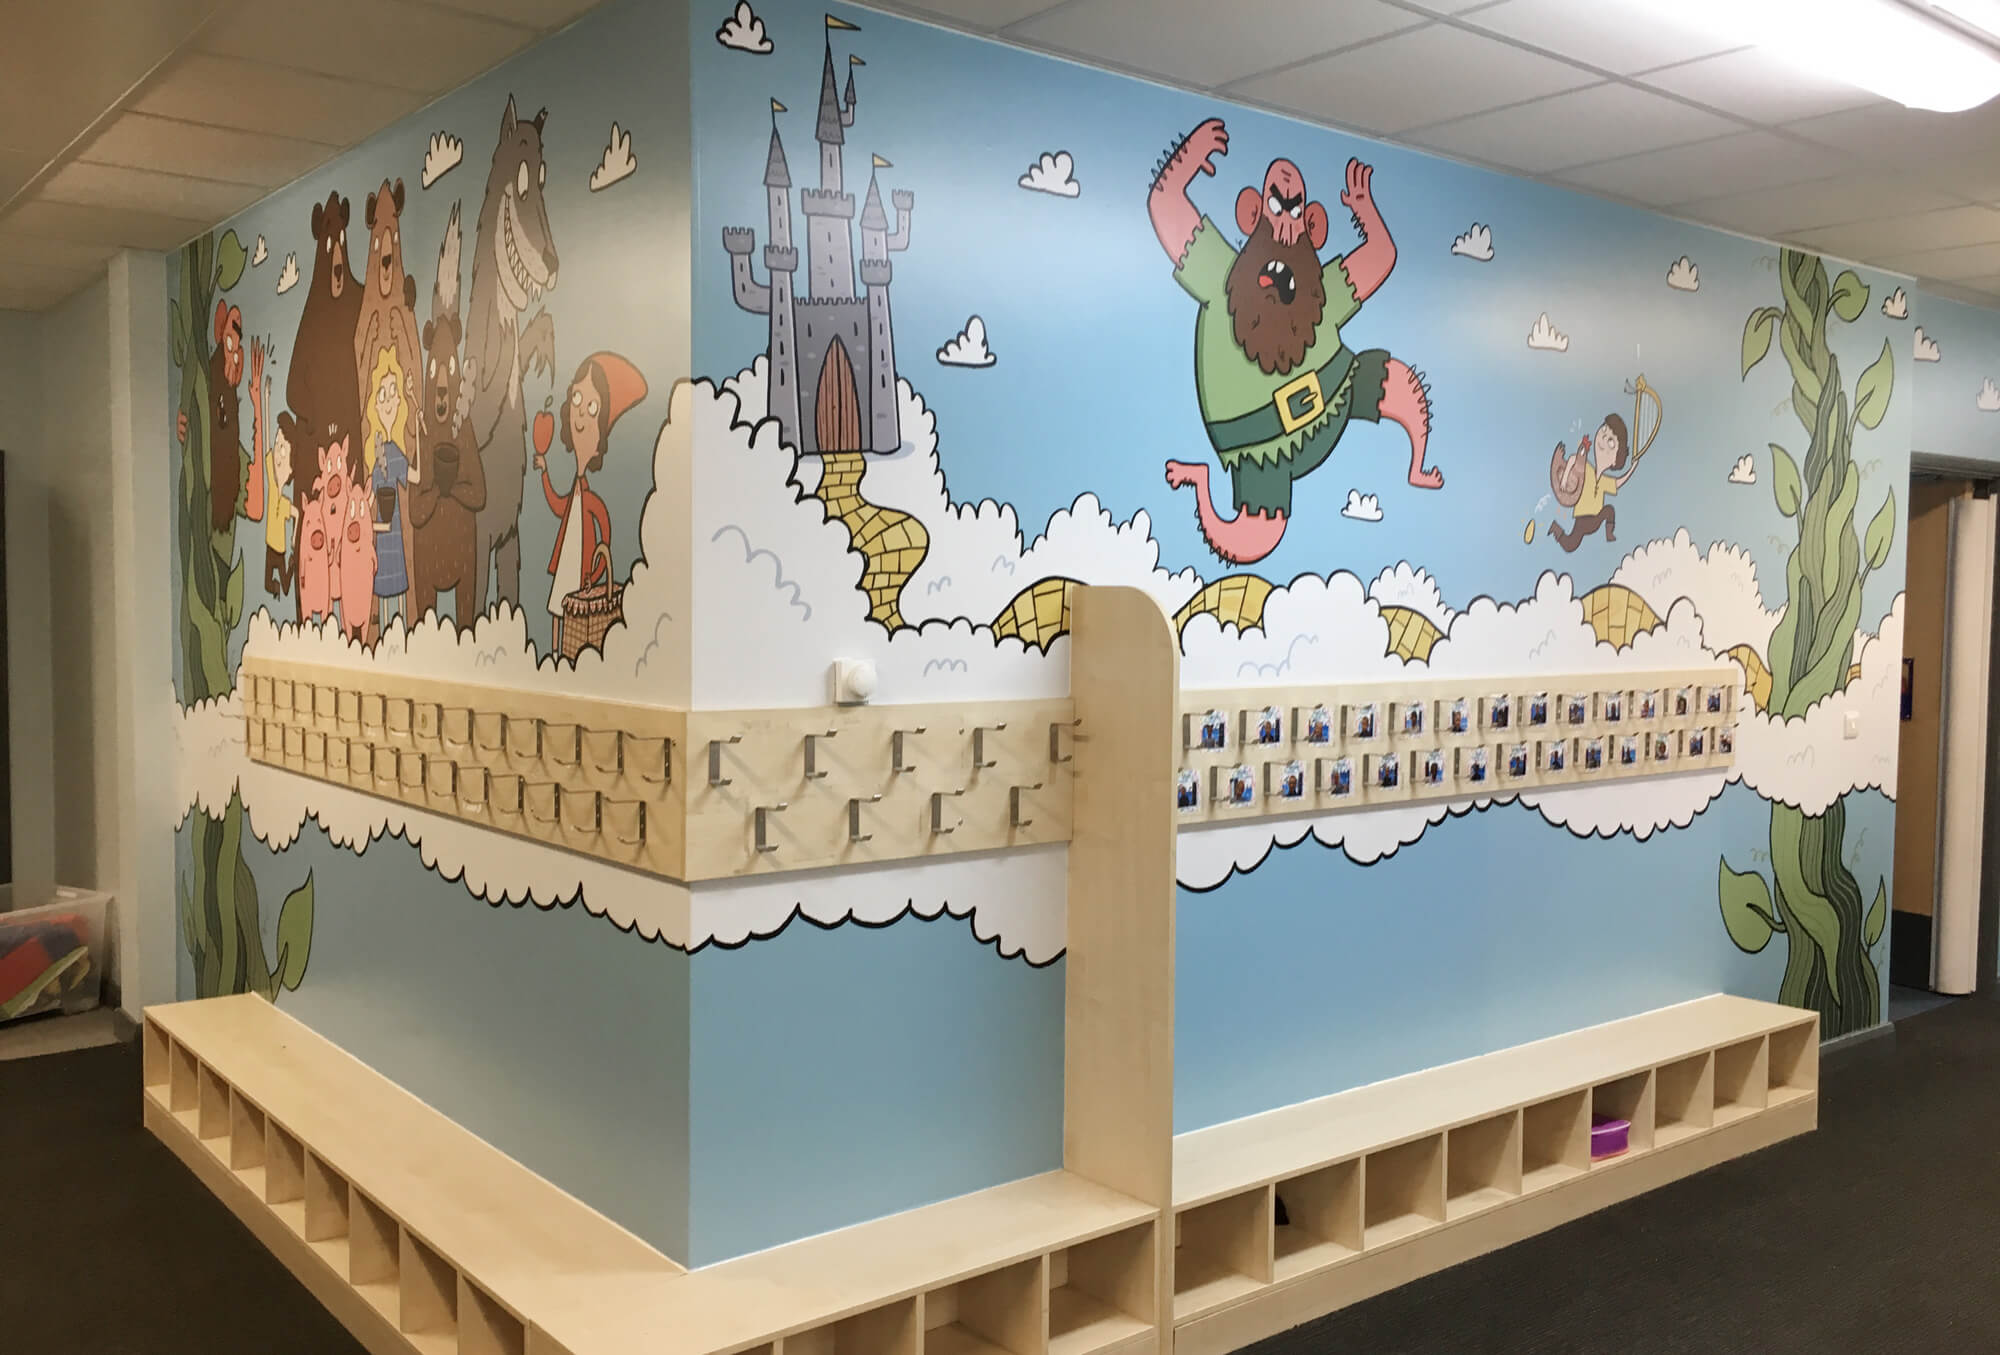 sacred_heart_primary_traditional_tales_wallgraphics_01.jpg